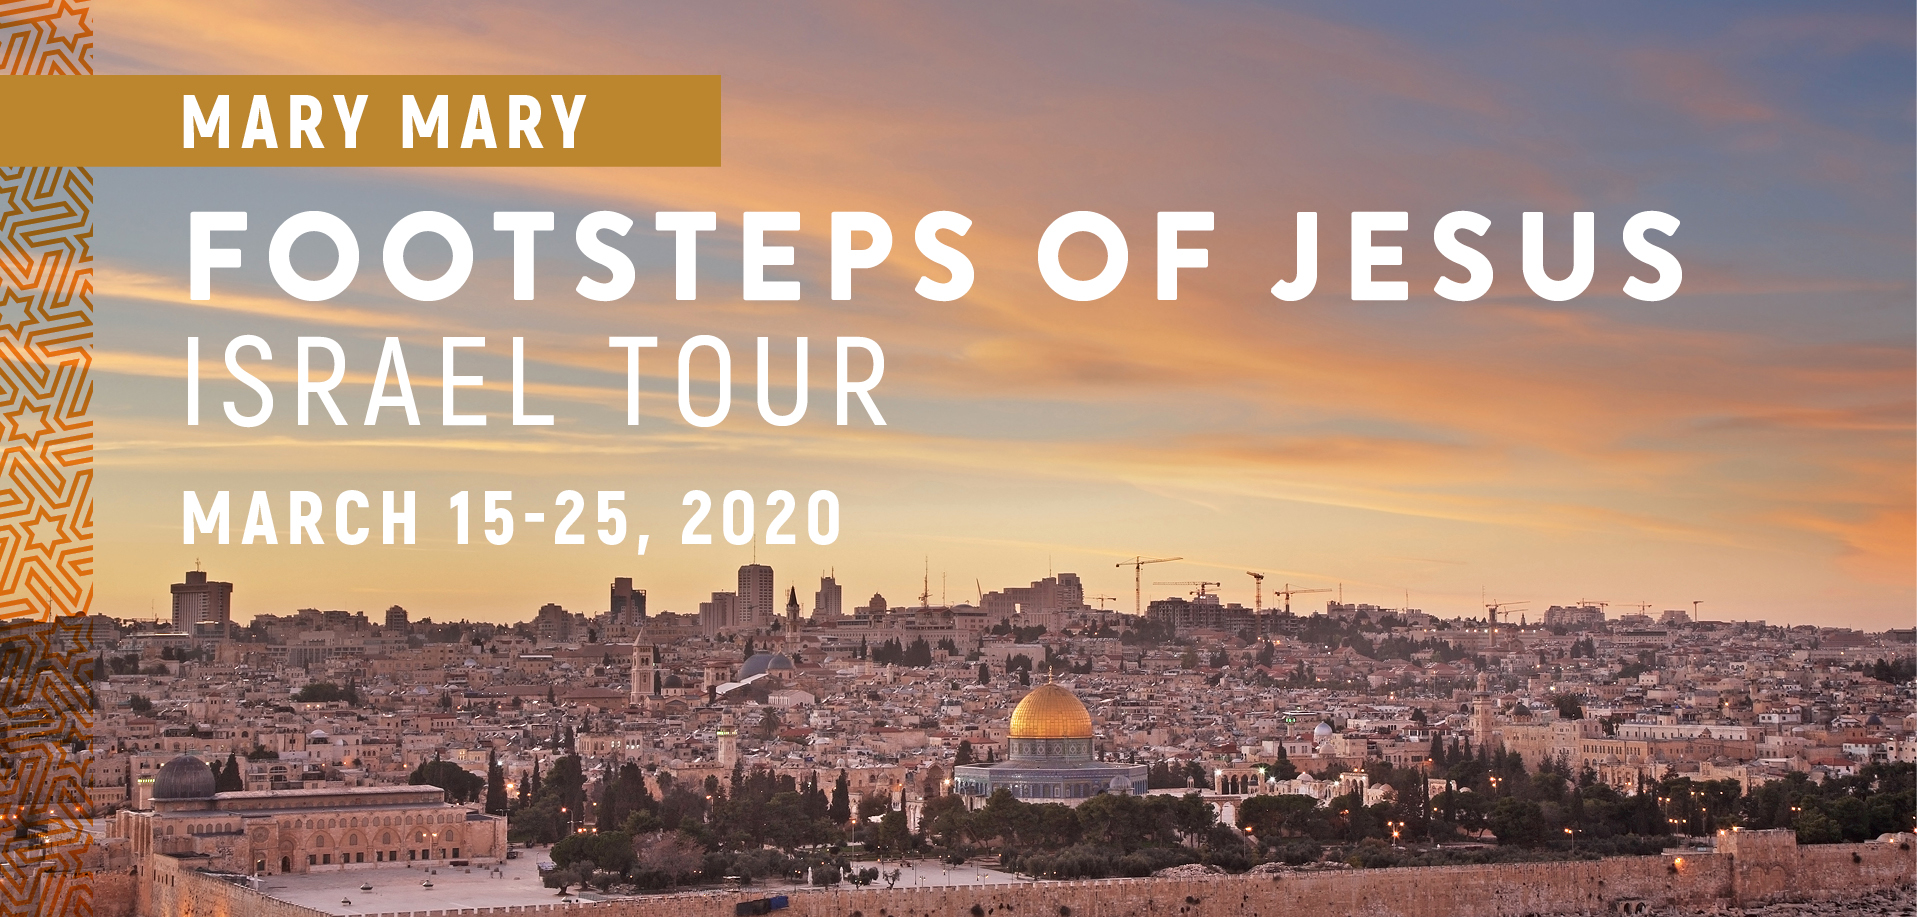 Take a Christian TourWOX with Mary Mary Footsteps of Jesus Israel Tour - March 15-25, 2020